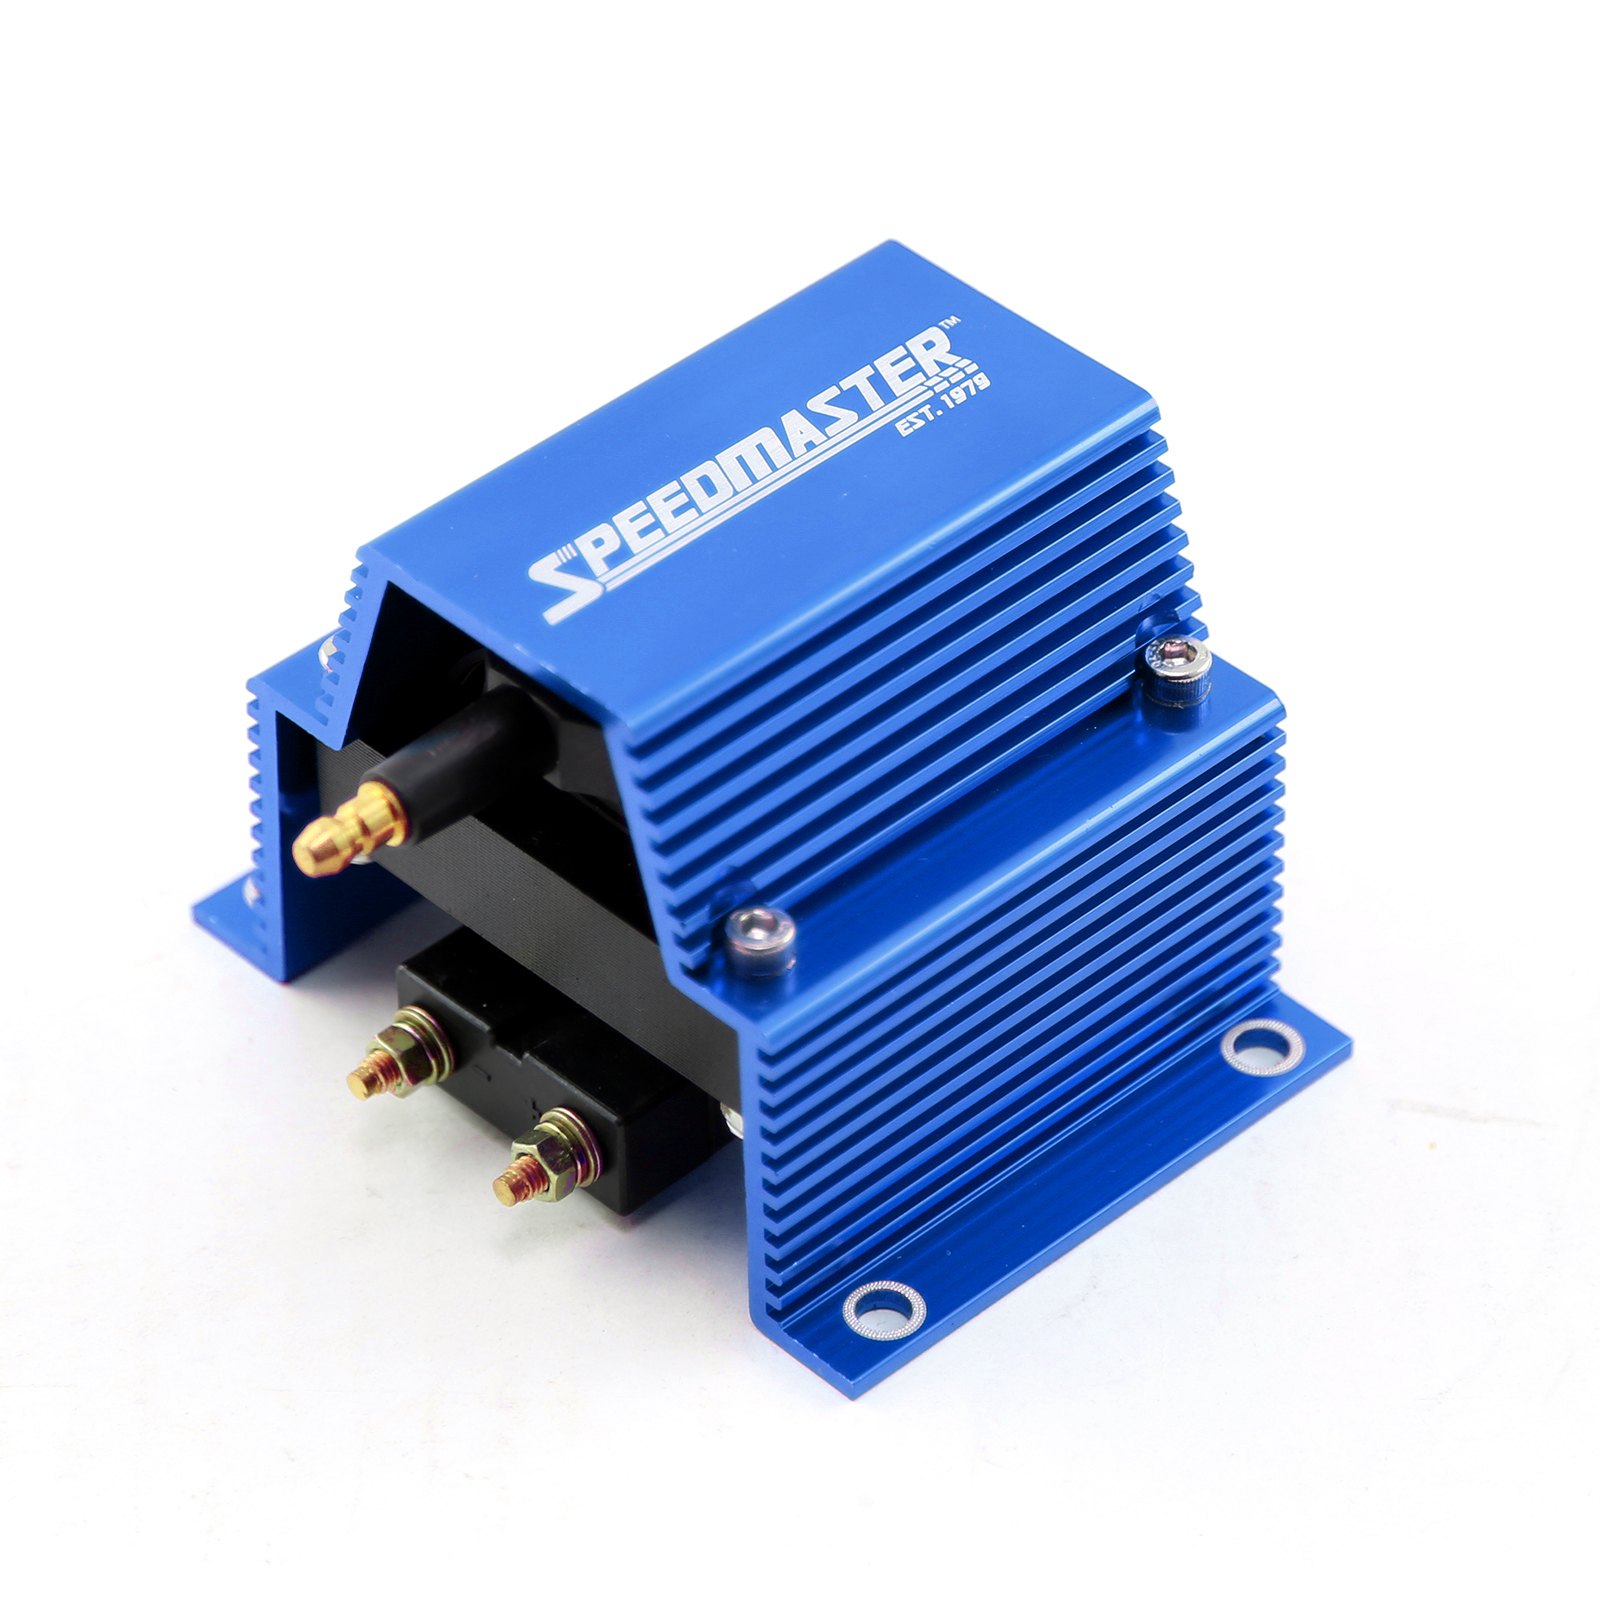 12V HO External Male E-Core Ignition Coil - Blue